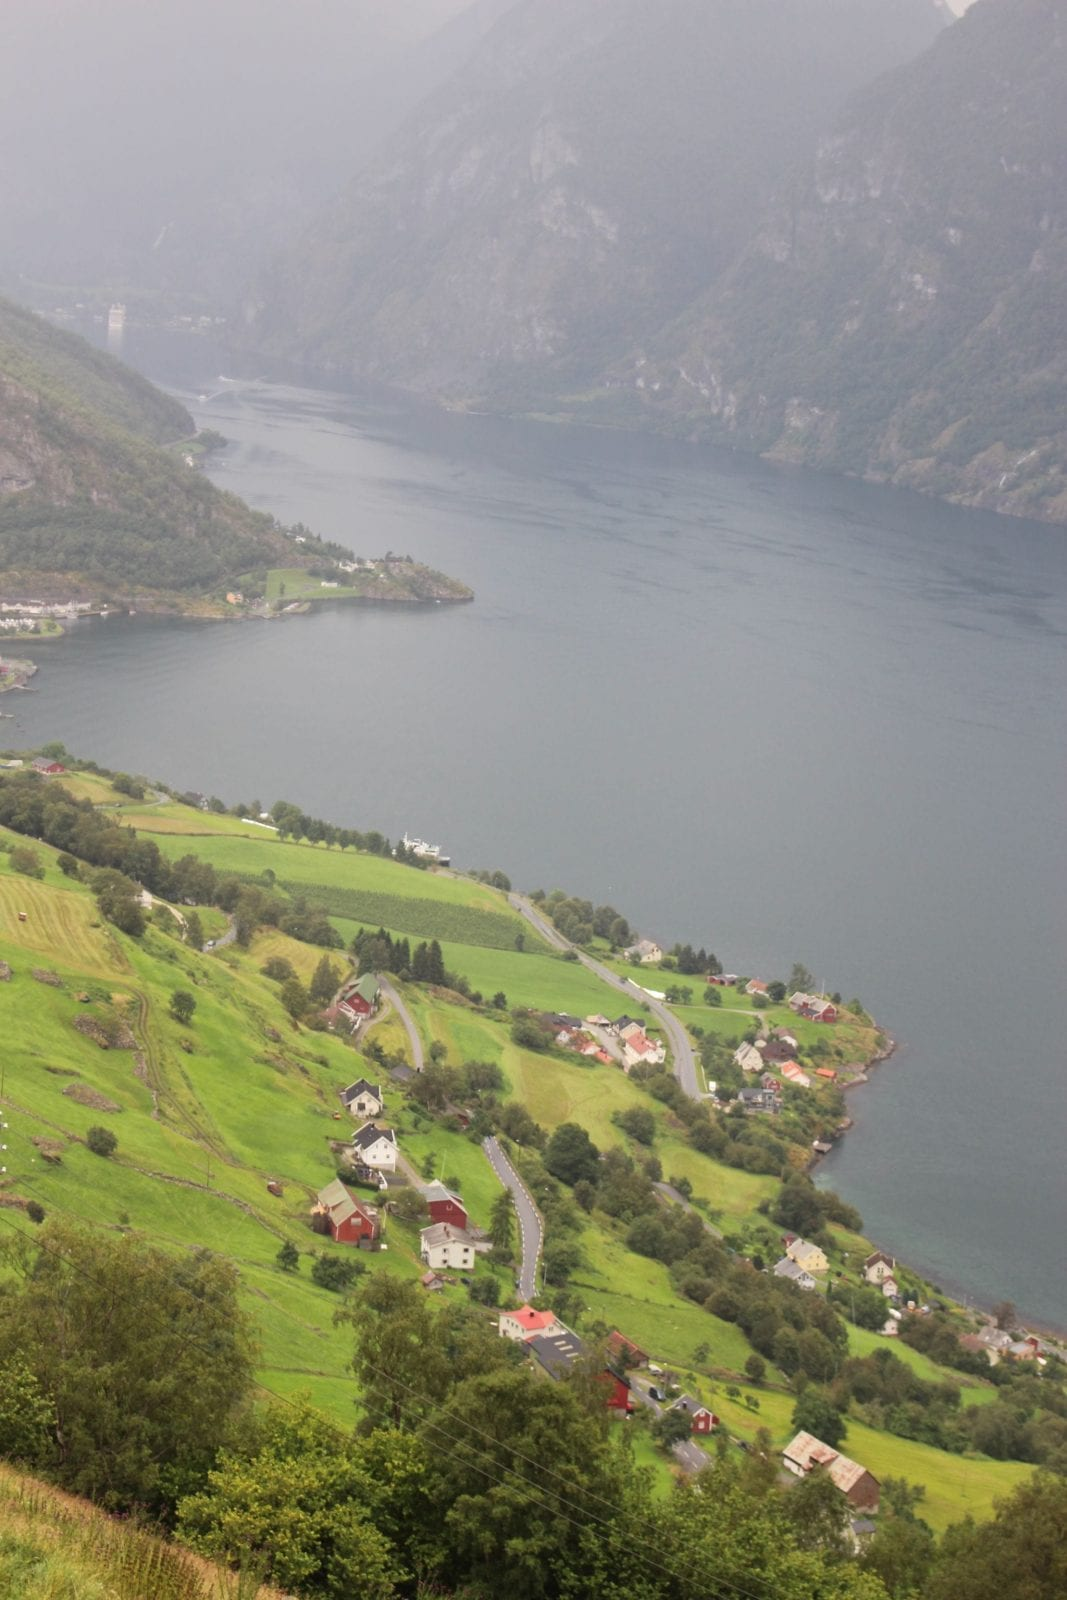 This is a wonderful capture of the view from Stegastein Viewpoint in Flam, Norway.